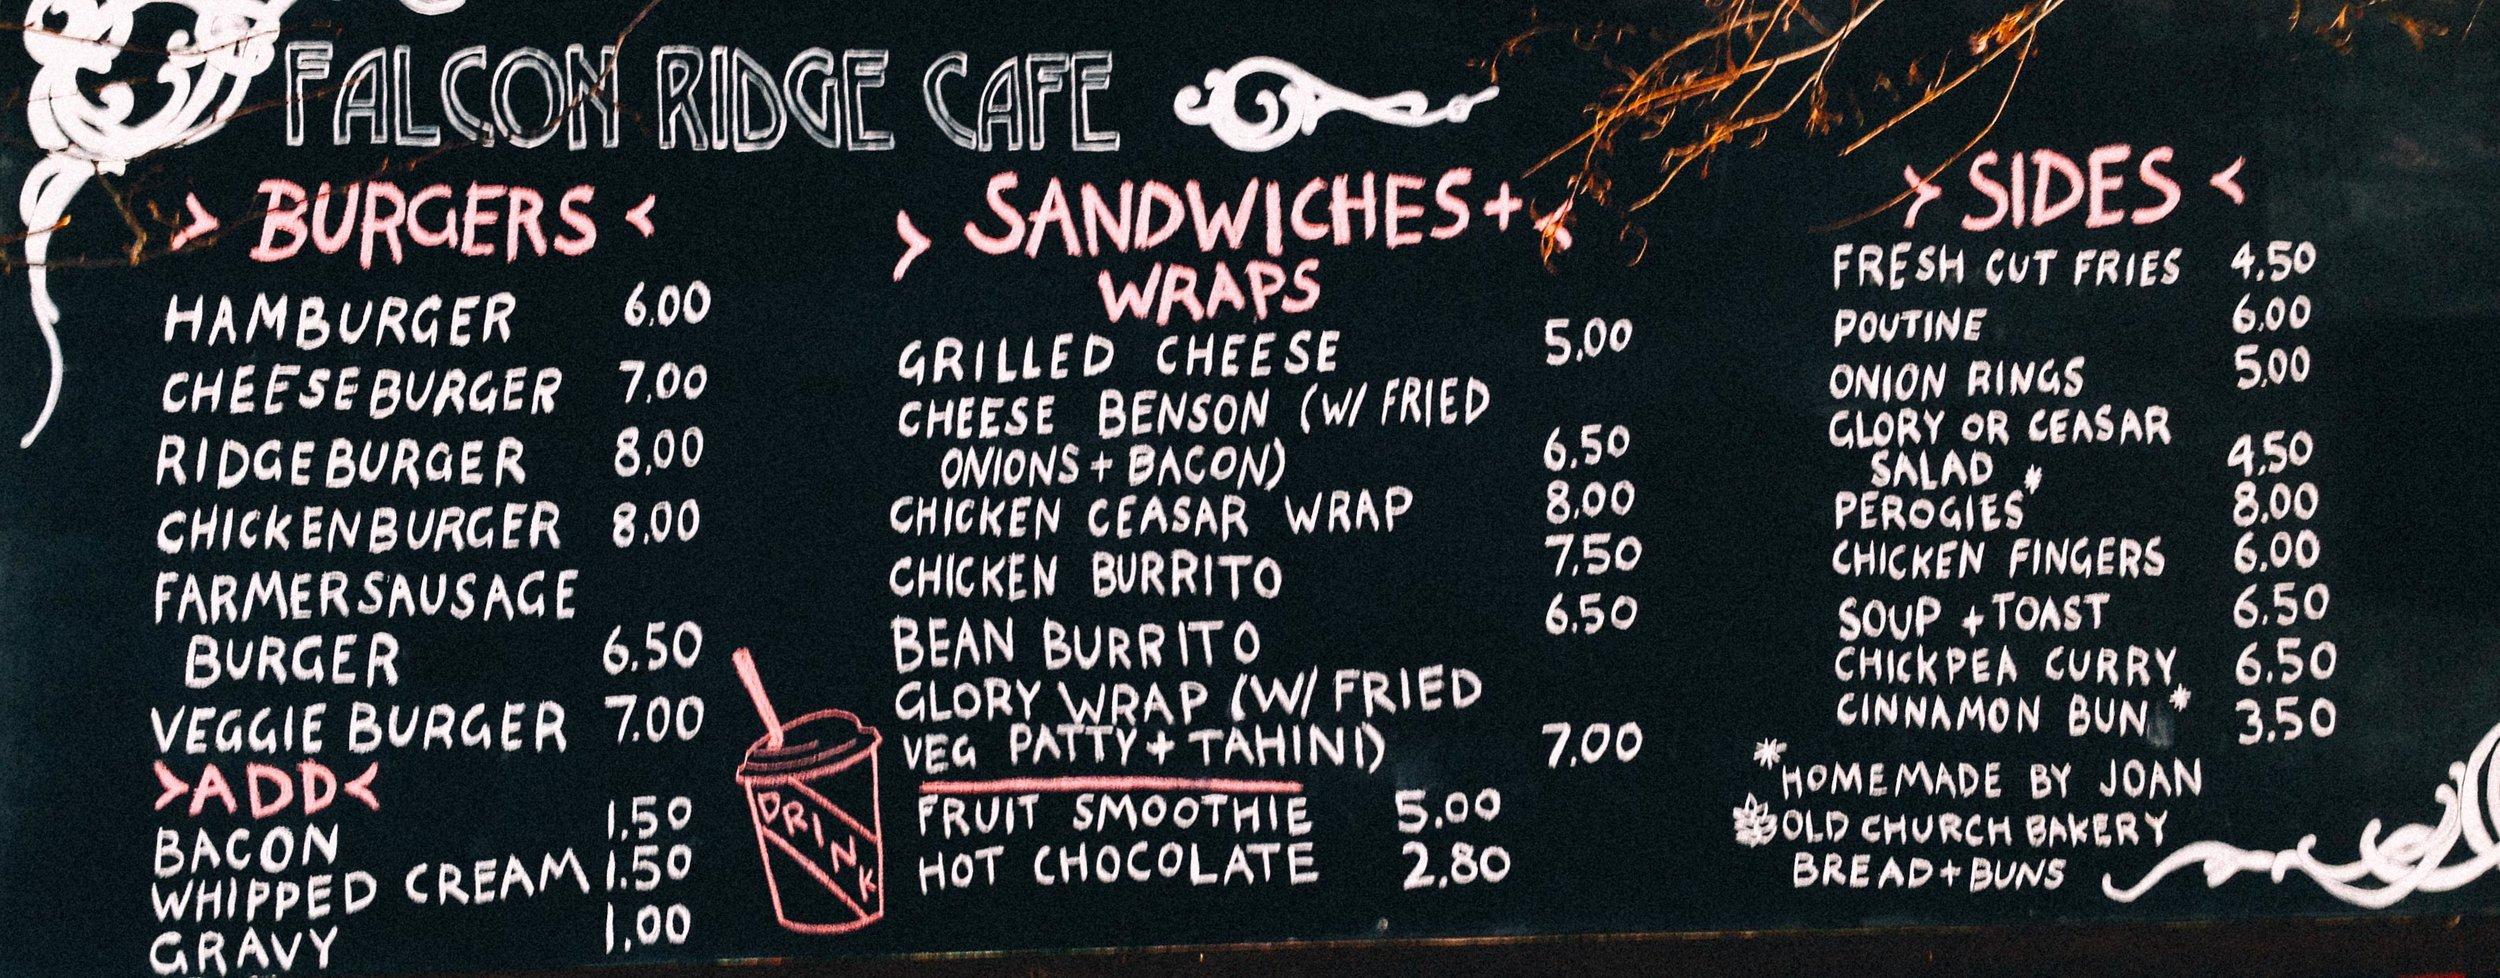 Features housemade fries and burgers, curries, wraps, all things good.